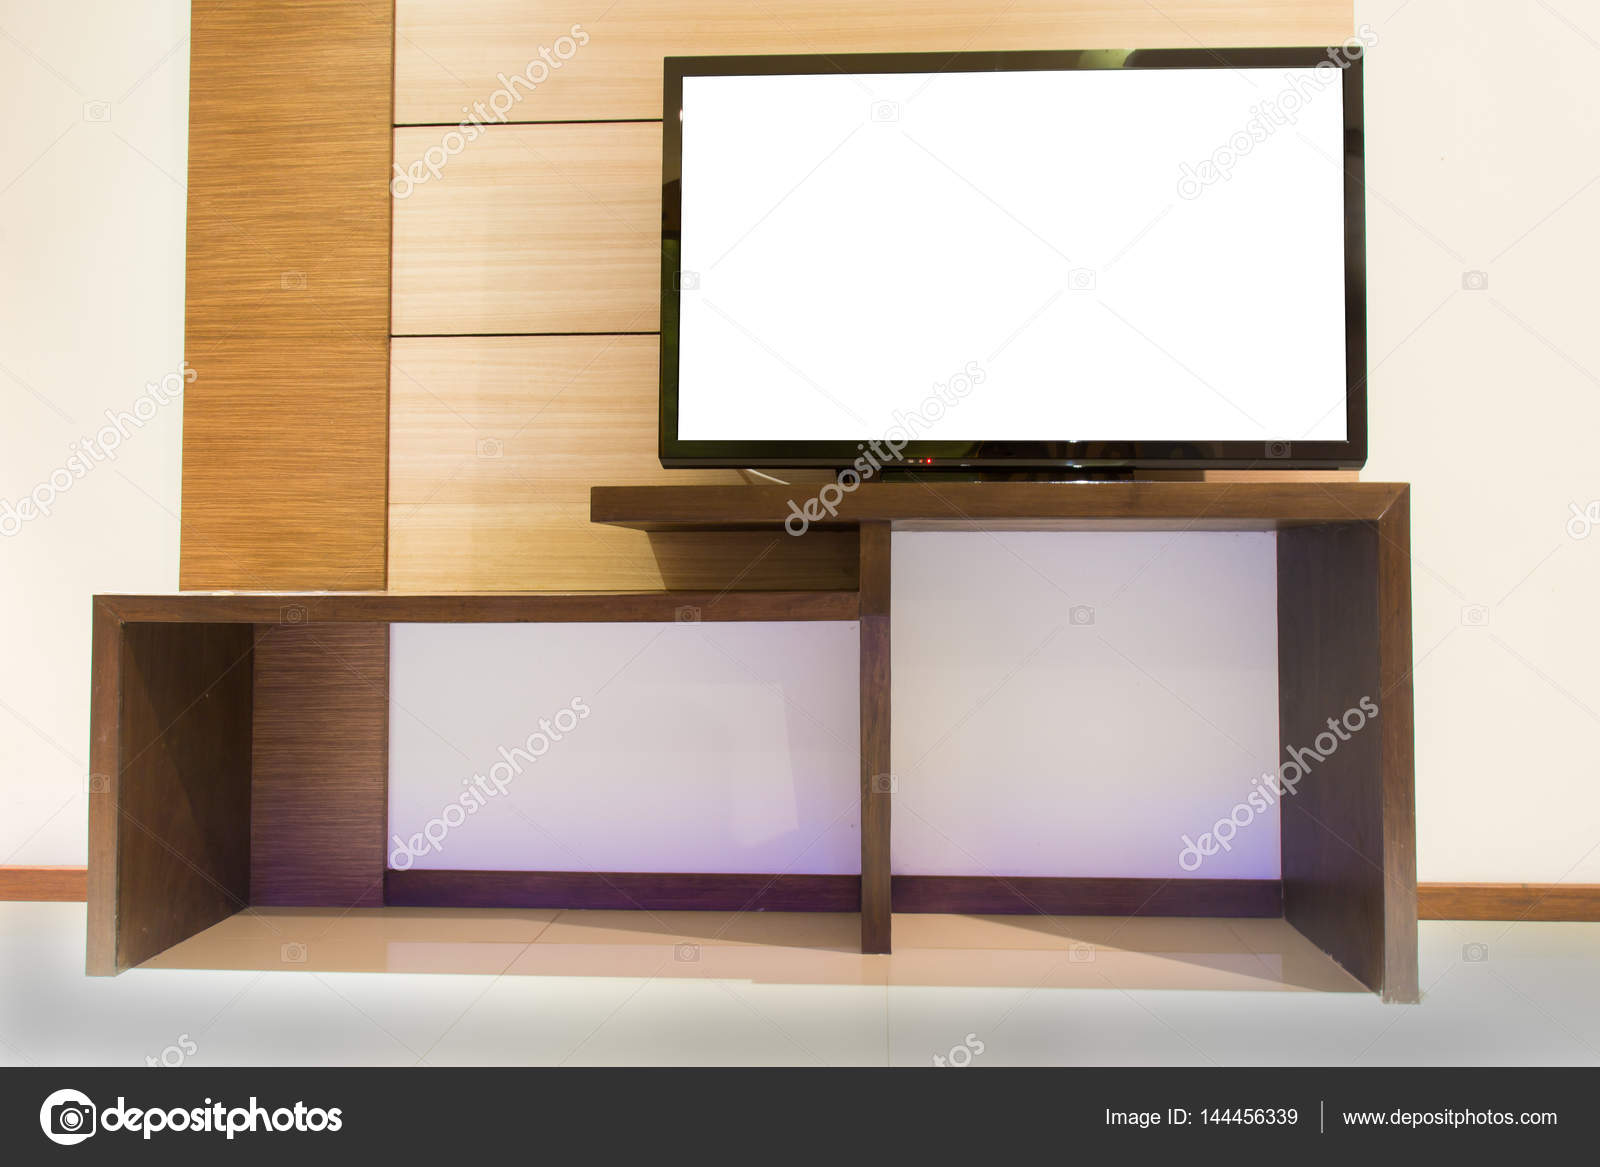 Enjoyable Light Wooden Tv Cabinet With Blank White Tv In Room Interior Creativecarmelina Interior Chair Design Creativecarmelinacom